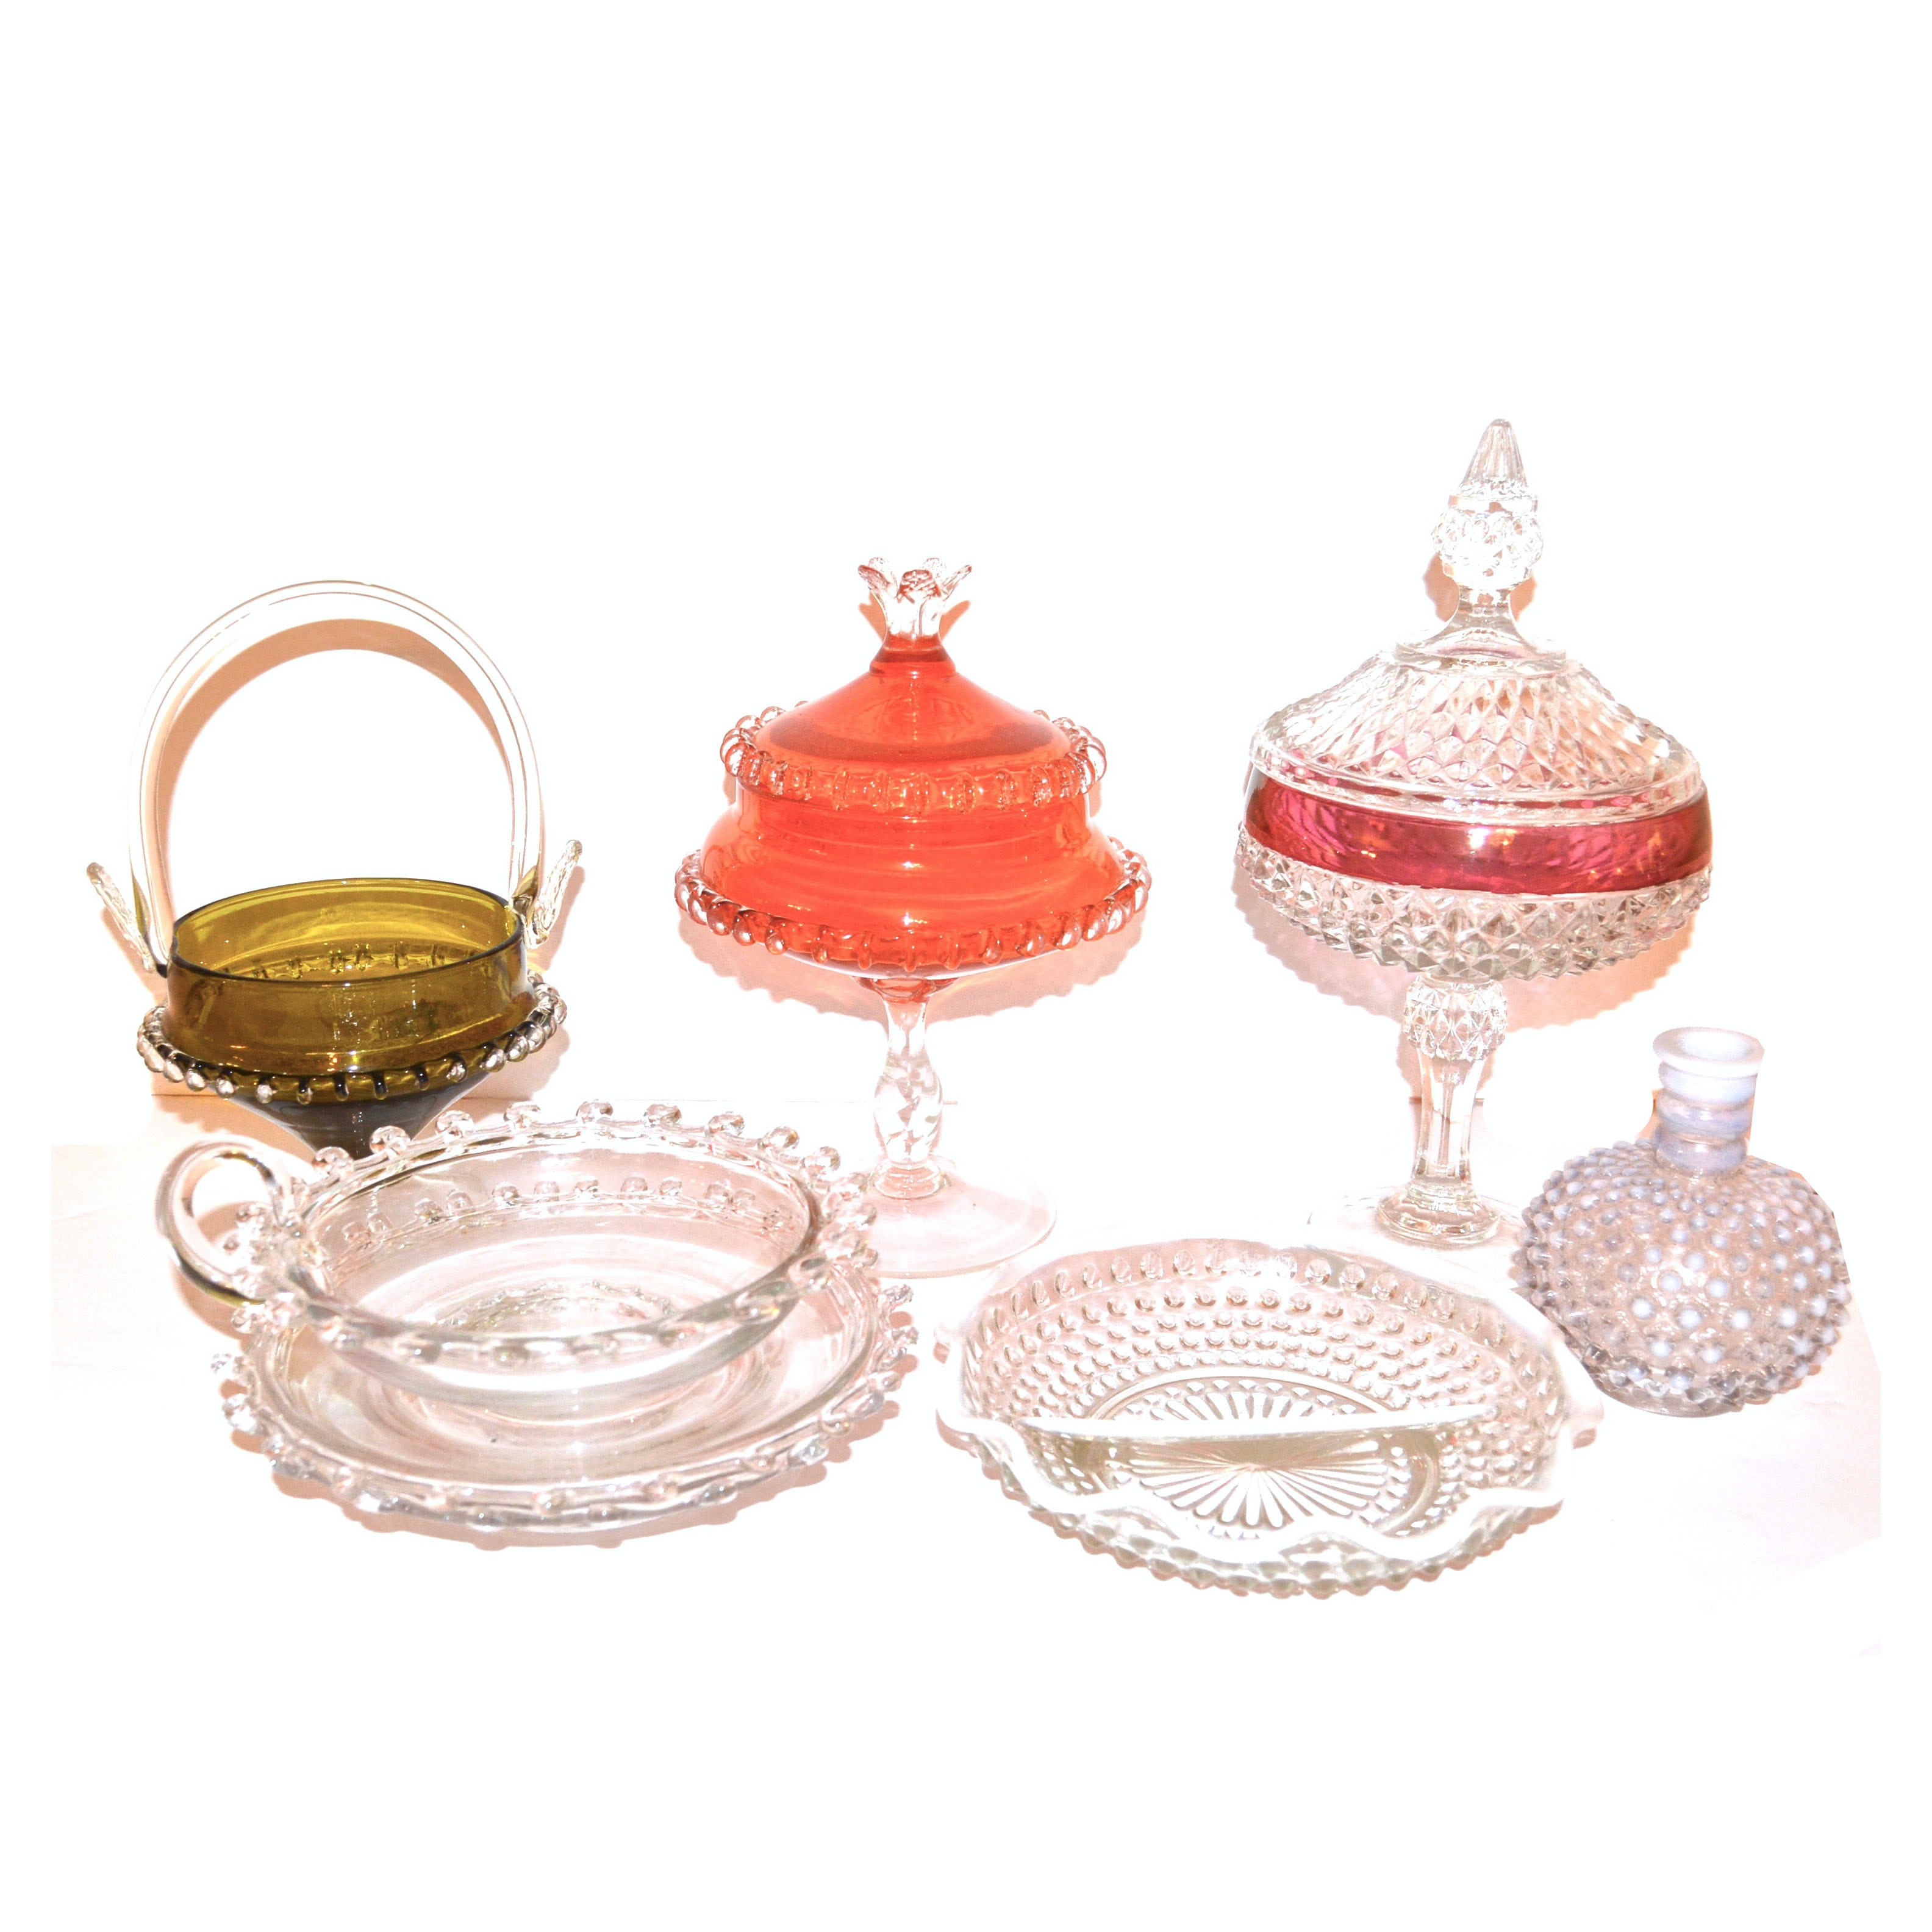 Vintage Fenton Hobnail Dishes and Assorted Glassware